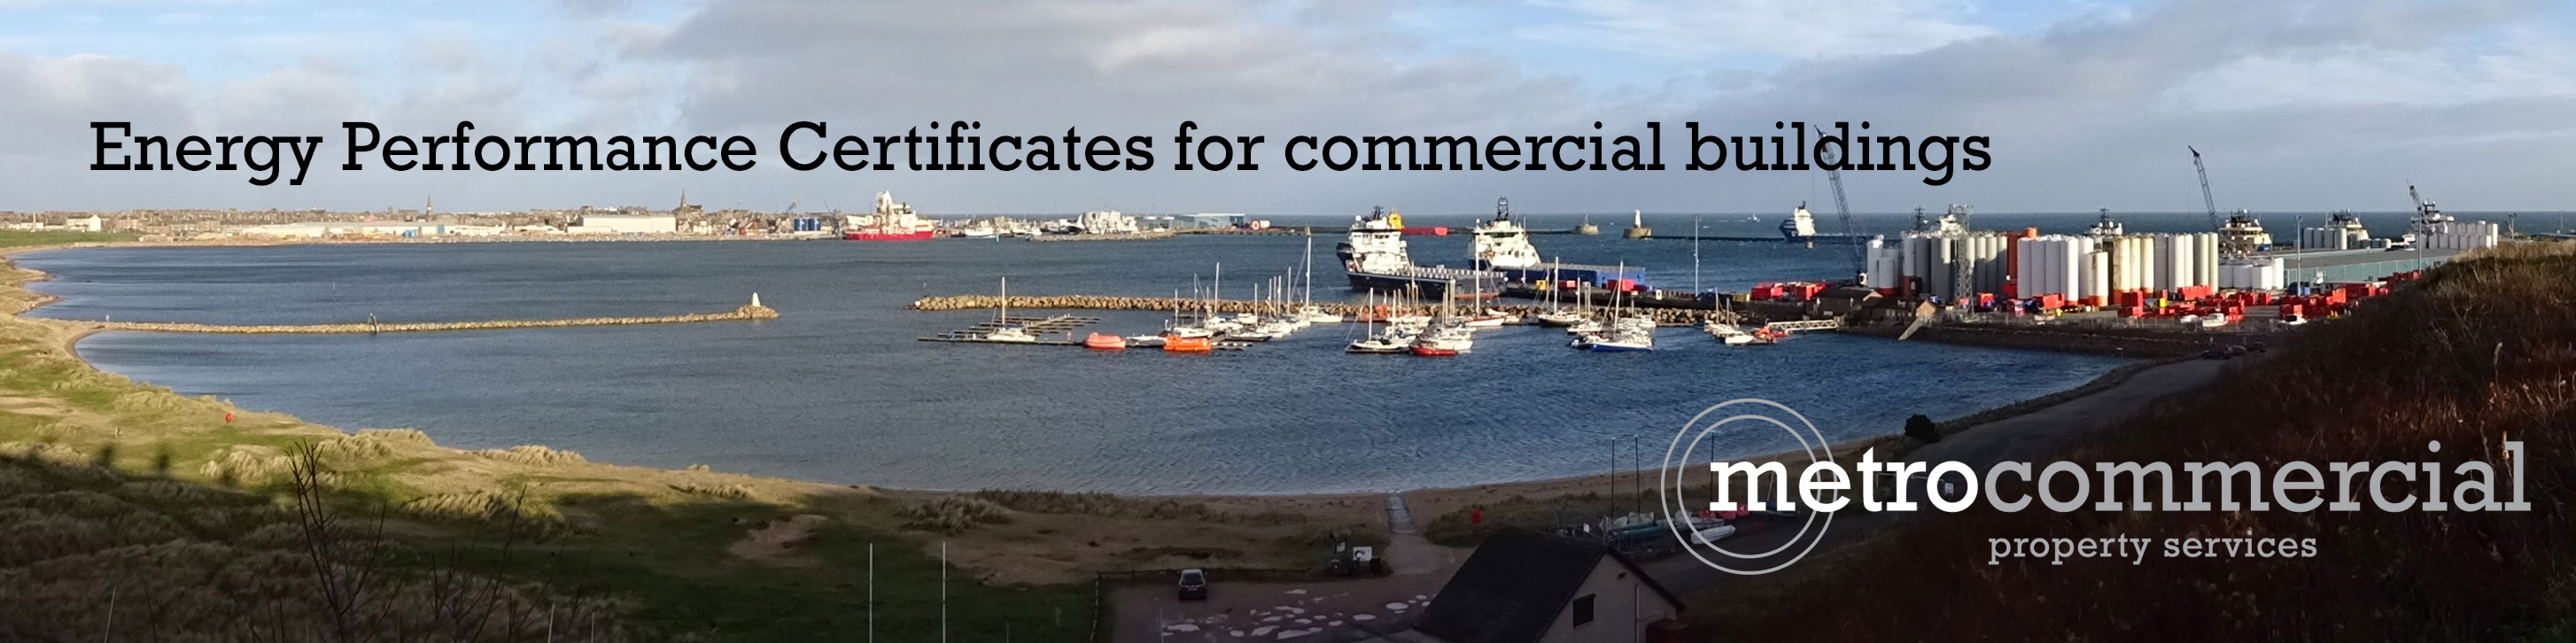 EPC Peterhead, retail, out of town, economy, commercial Energy Performance Certificates Peterhead